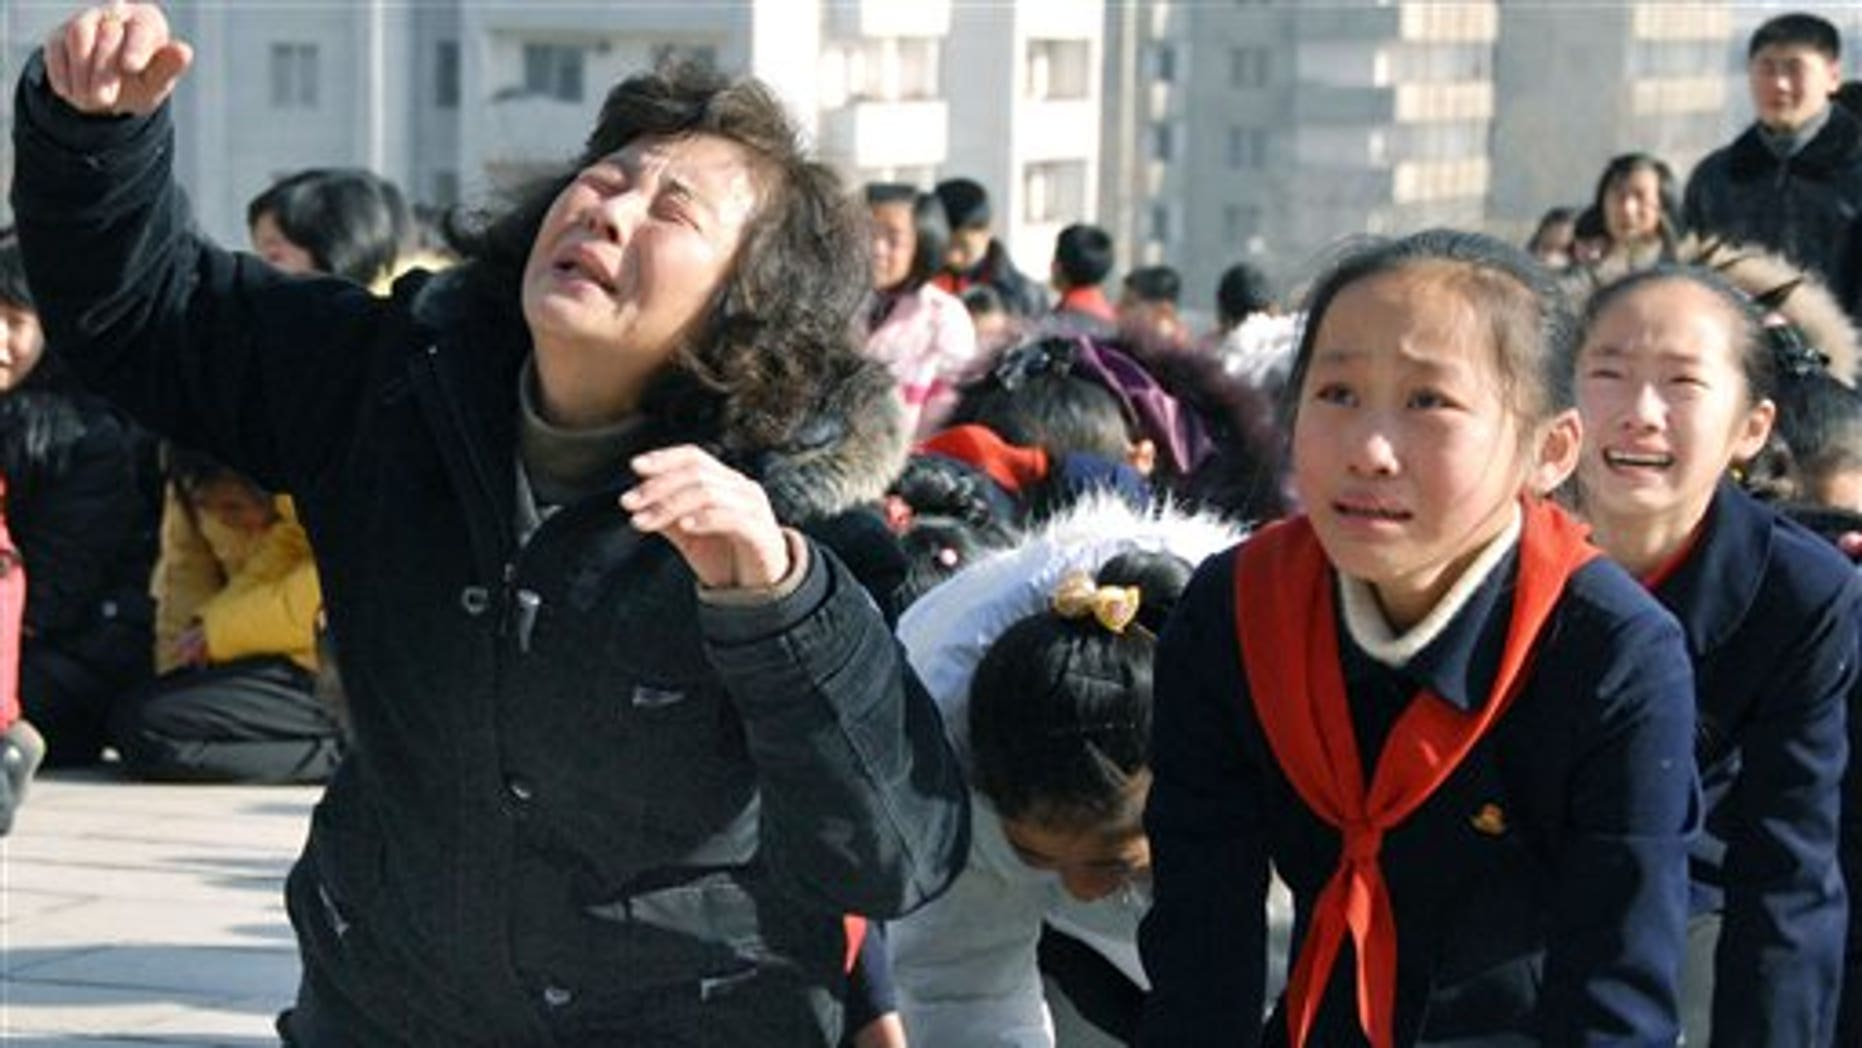 December 19, 2011: North Korean women cry after learning death of their leader Kim Jong Il.